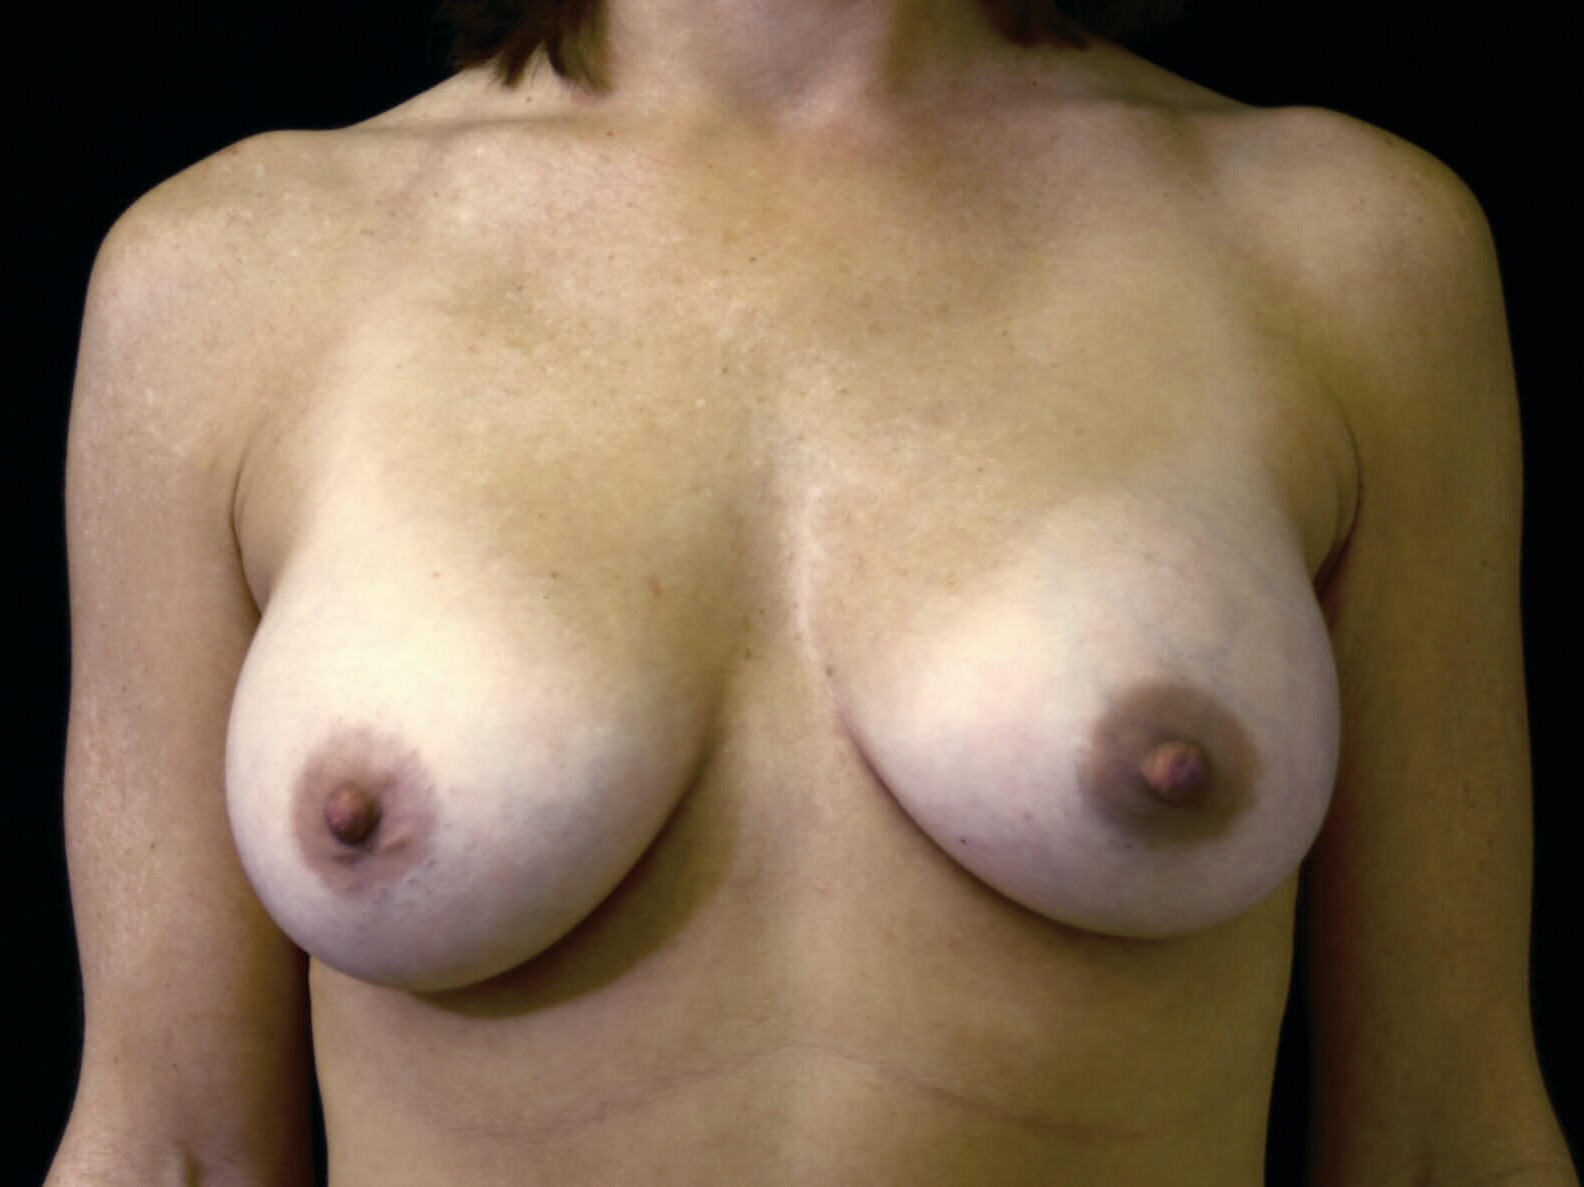 DALLAS TEXAS WOMAN HAS BREAST AUGMENTATION SURGERY WITH SILICONE GEL IMPLANTS